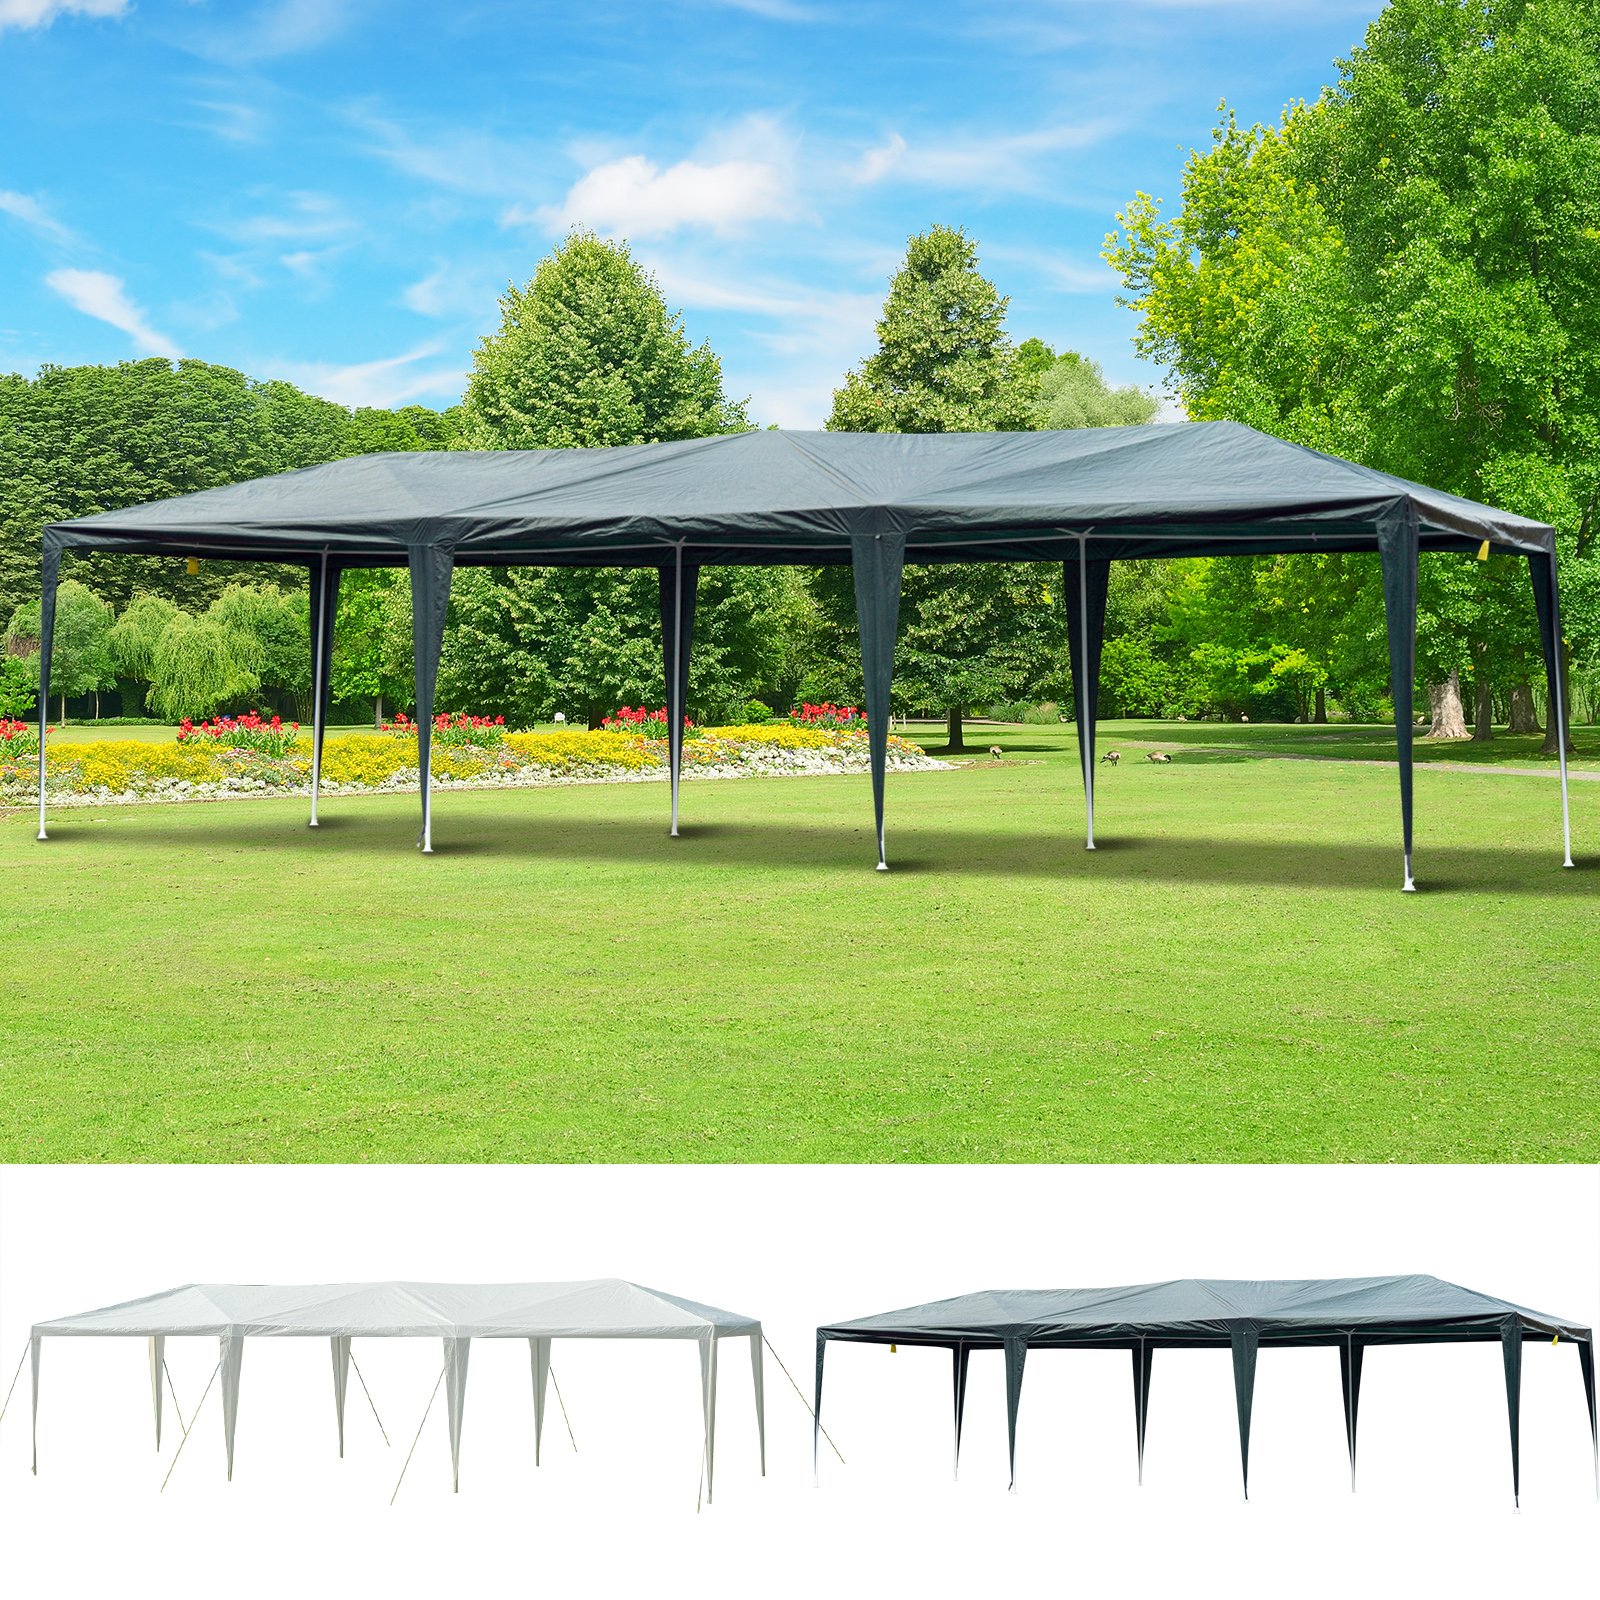 Genial Details About 10u0027 X 30u0027 Gazebo Canopy Cover Party Tent With Removable Mesh  Side Walls Patio